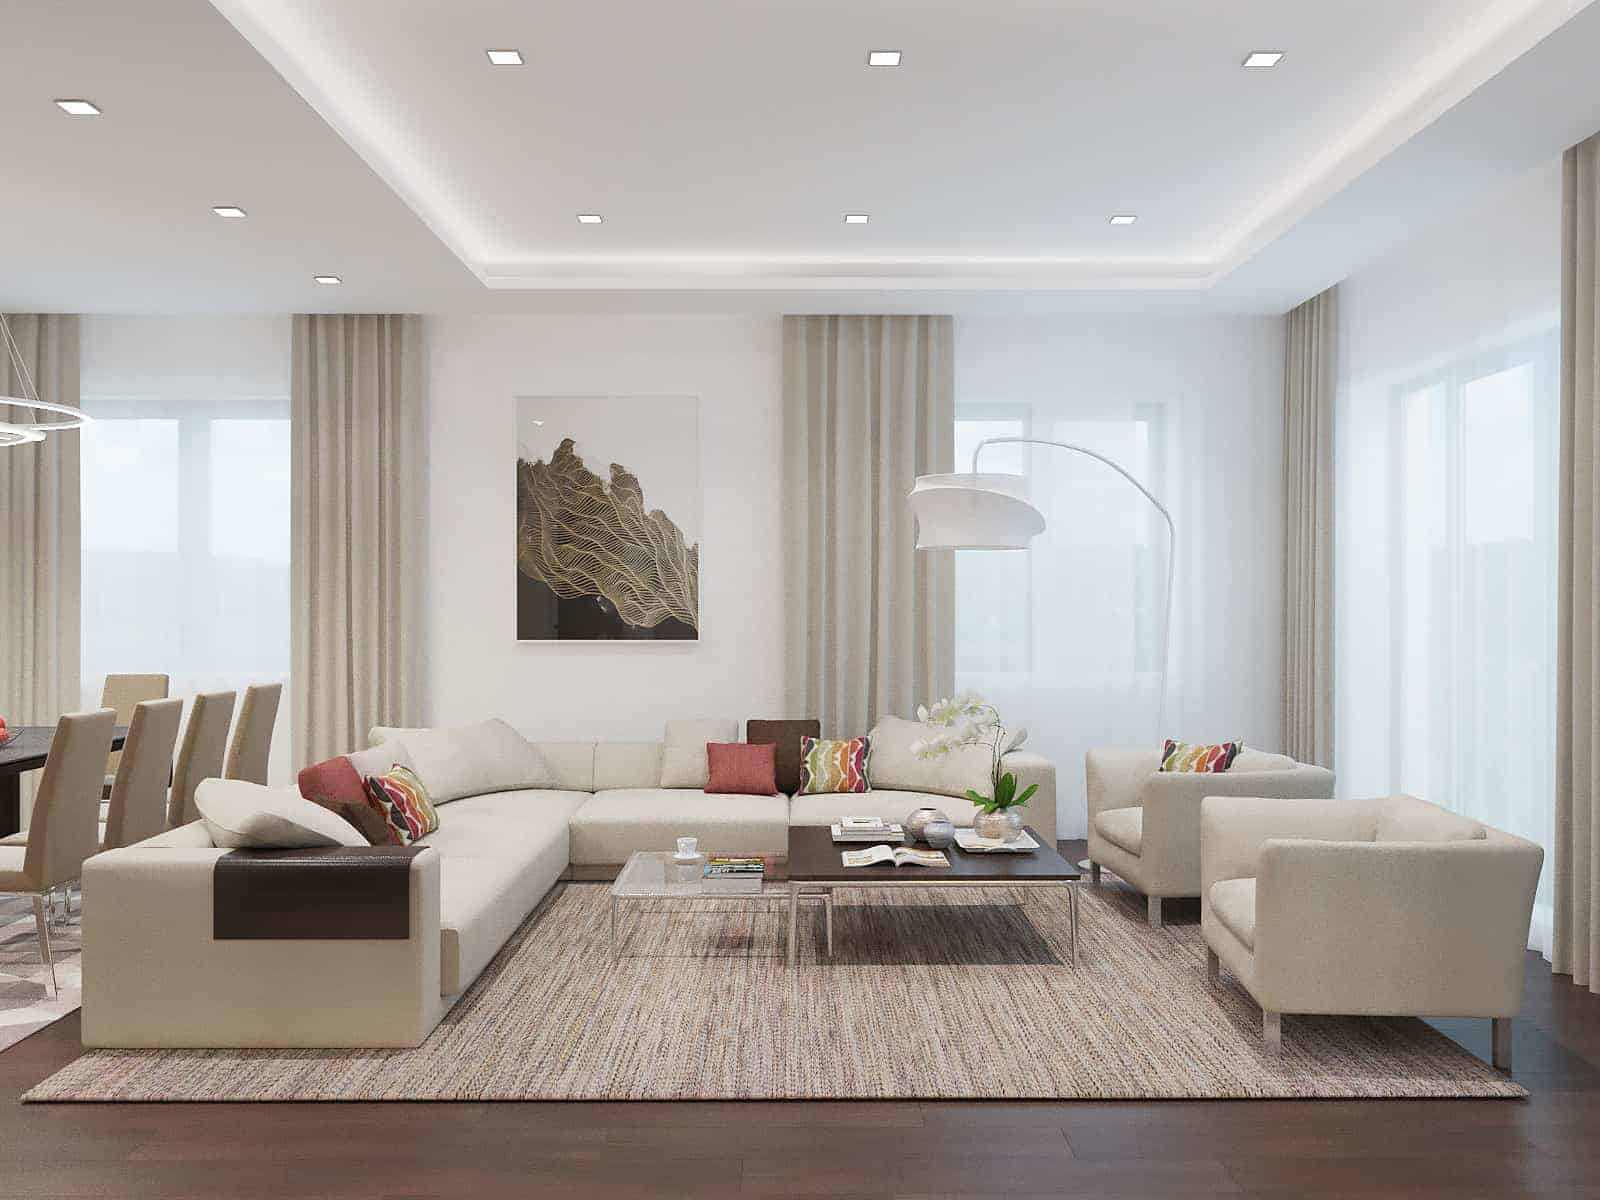 Living Room With Light Colors - Design Ideas